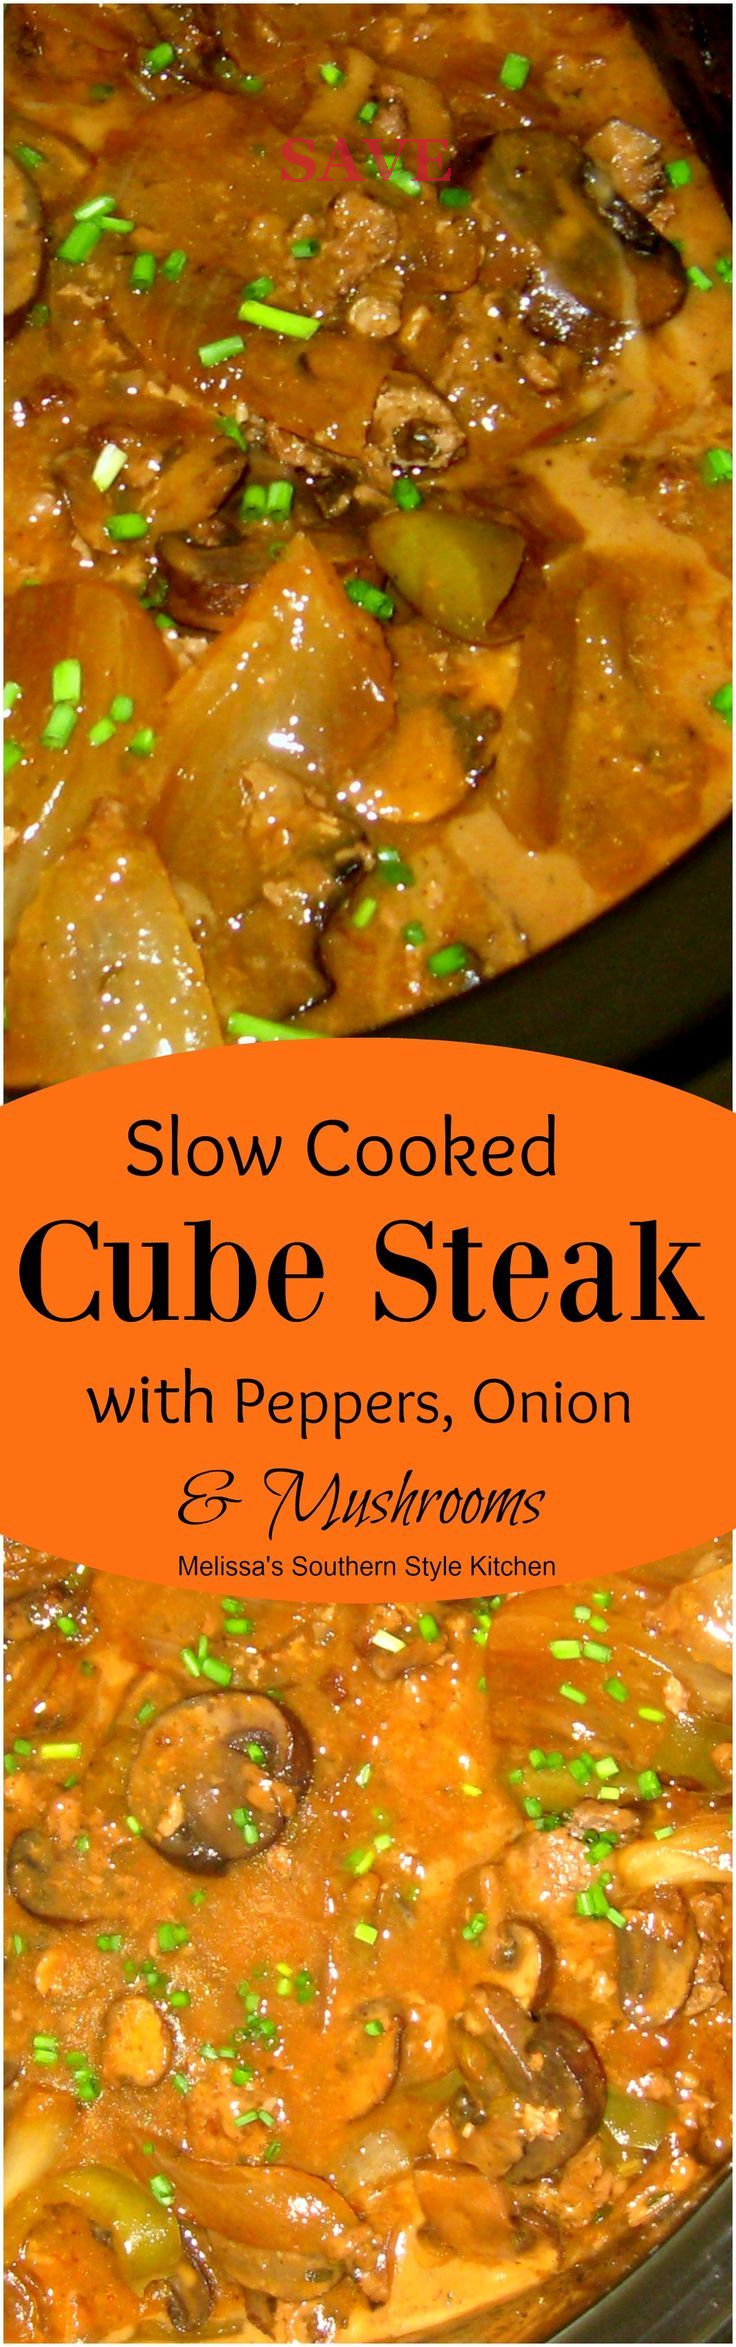 Slow Cooked Cubed Steak with Peppers, Onions And Baby Bella's - Steak with gravy is one of the simplest dishes to cook in a slow cooker. The…